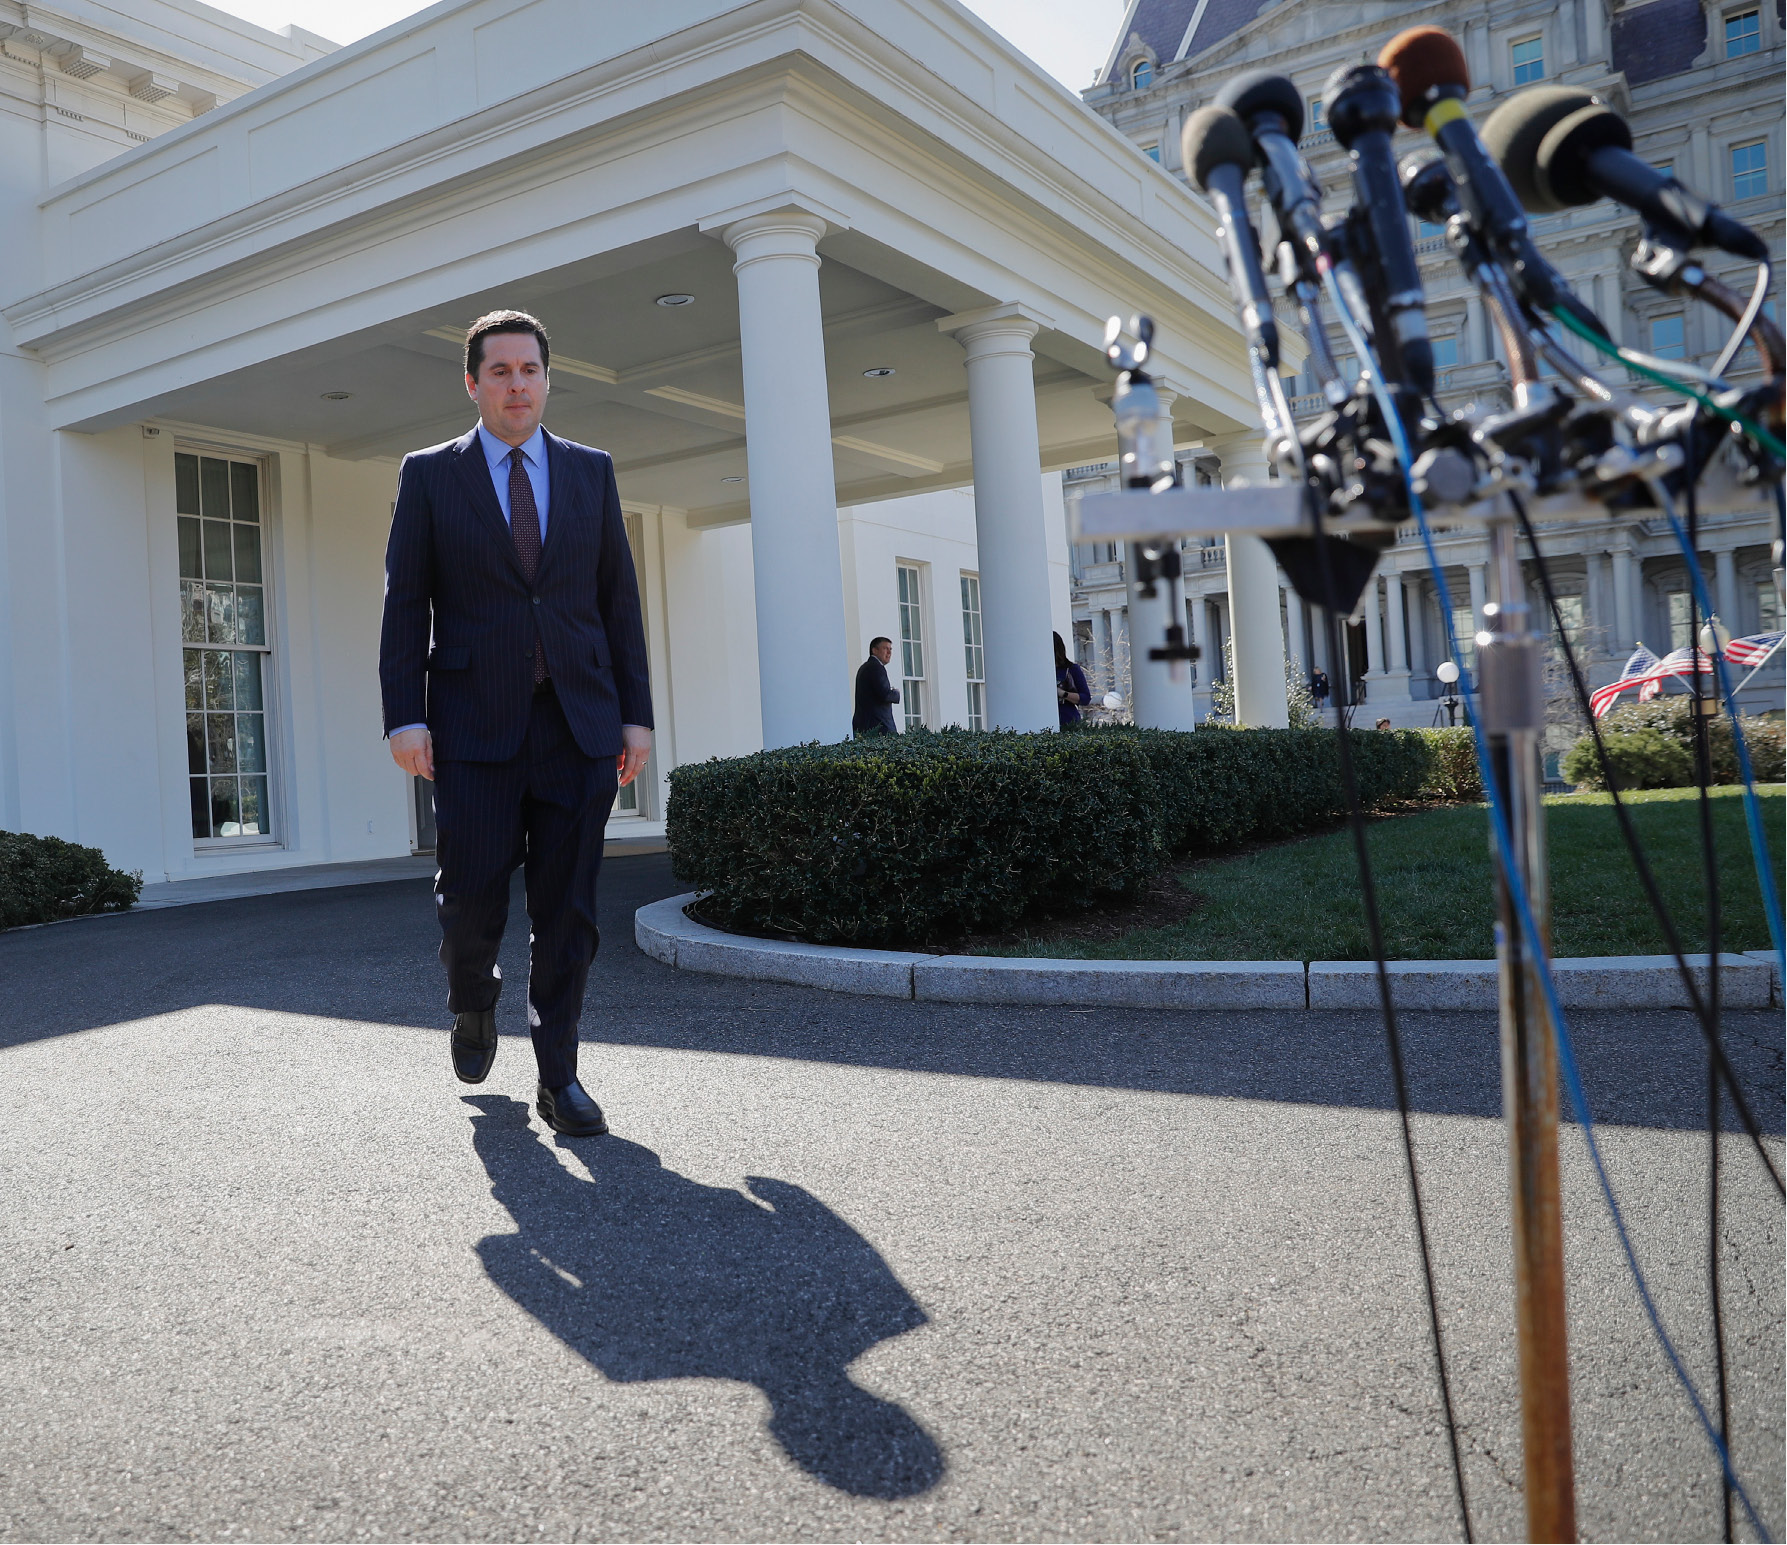 House Intelligence Committee Chairman Rep. Devin Nunes, R-Calif, walks out of the White House in Washington, Wednesday, March 22, 2017,to speak with reporters after a meeting with President Donald Trump. (AP Photo/Pablo Martinez Monsivais)